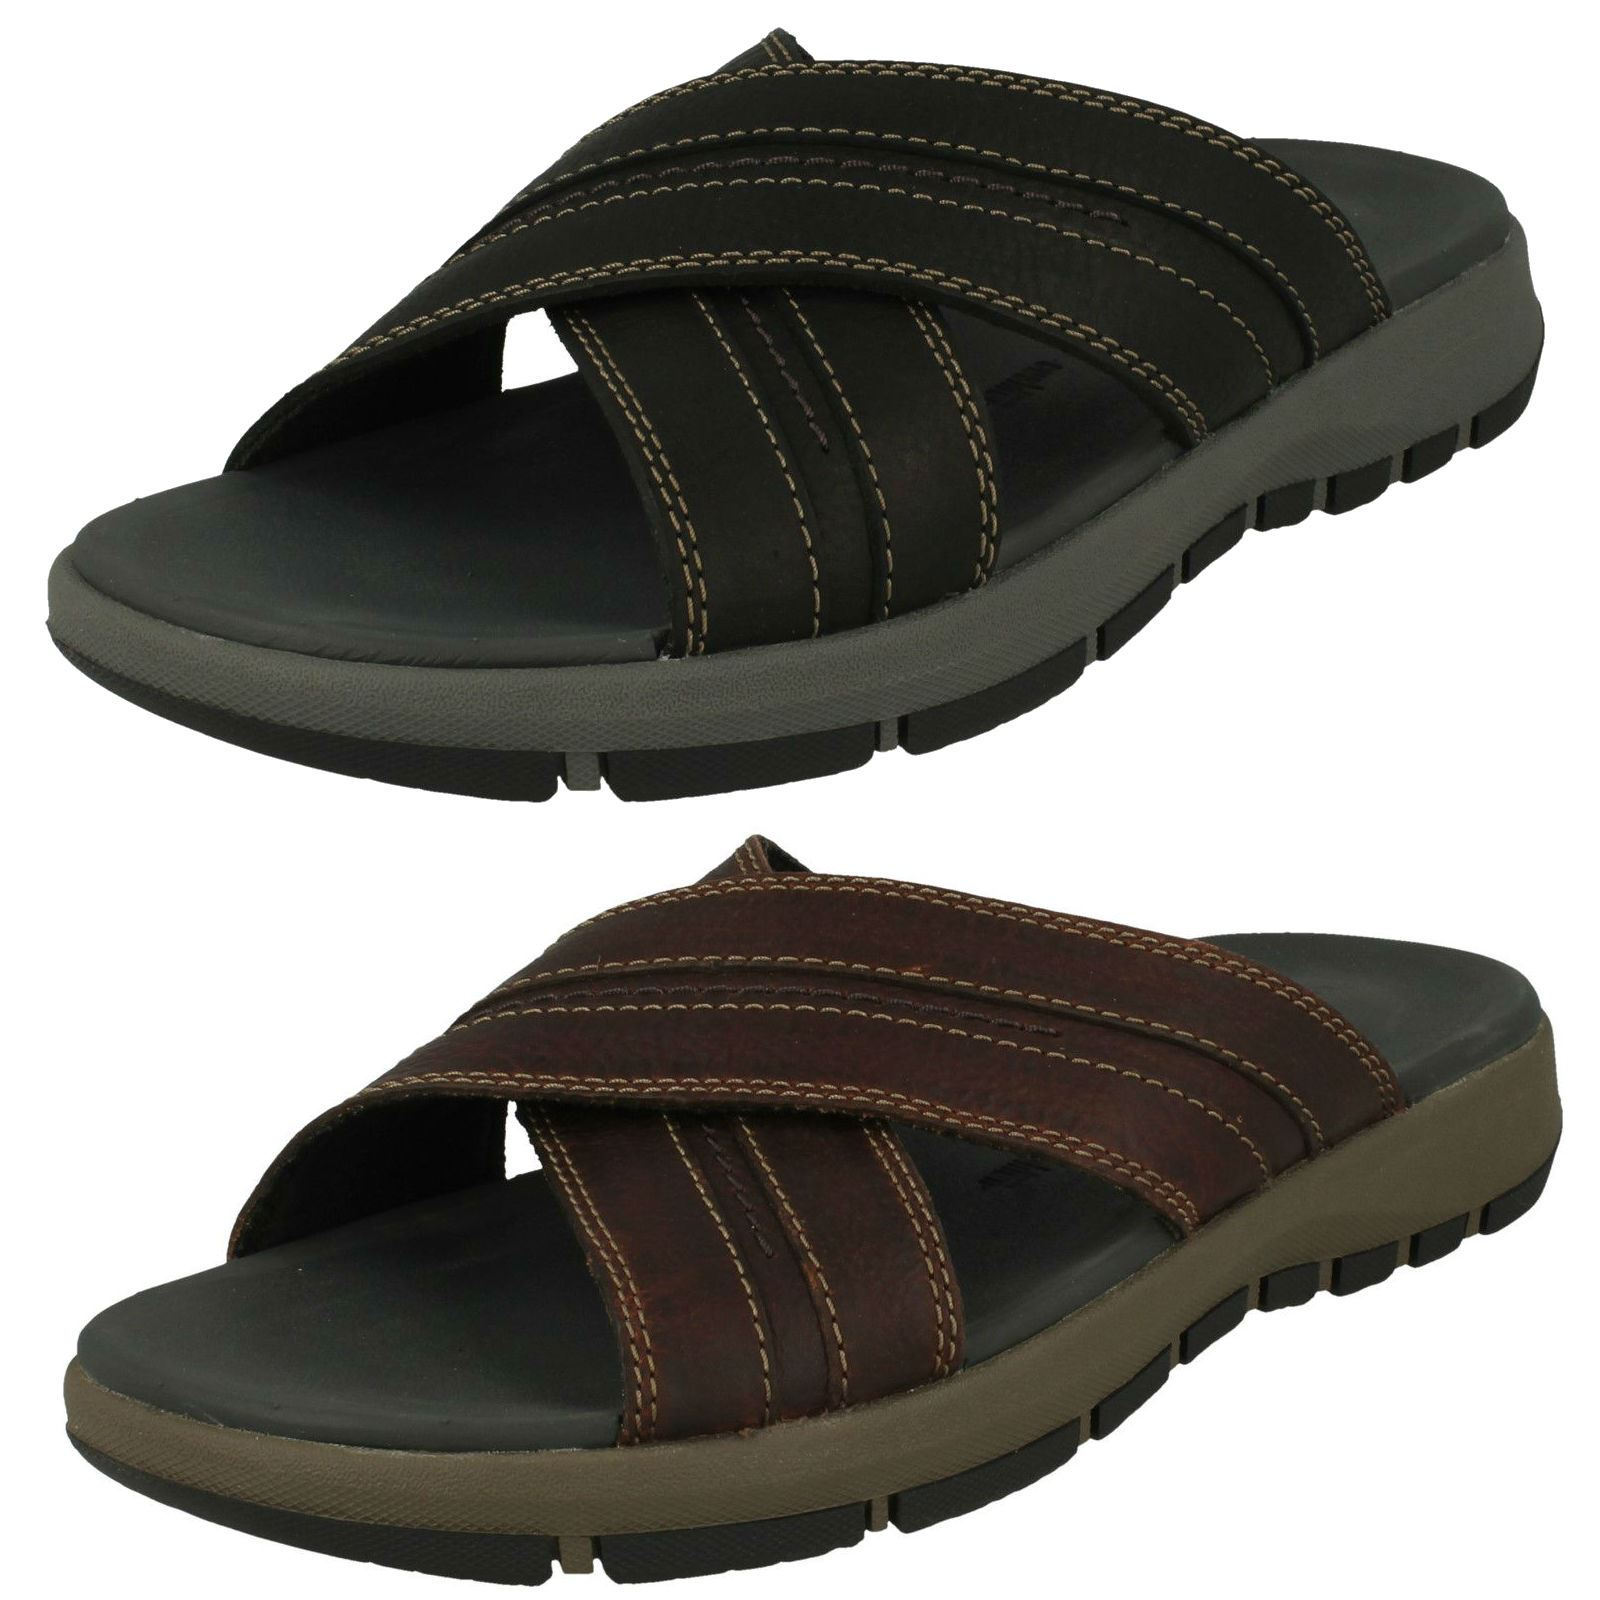 Mens Clarks Slip On Sandals *Brixby Cross*